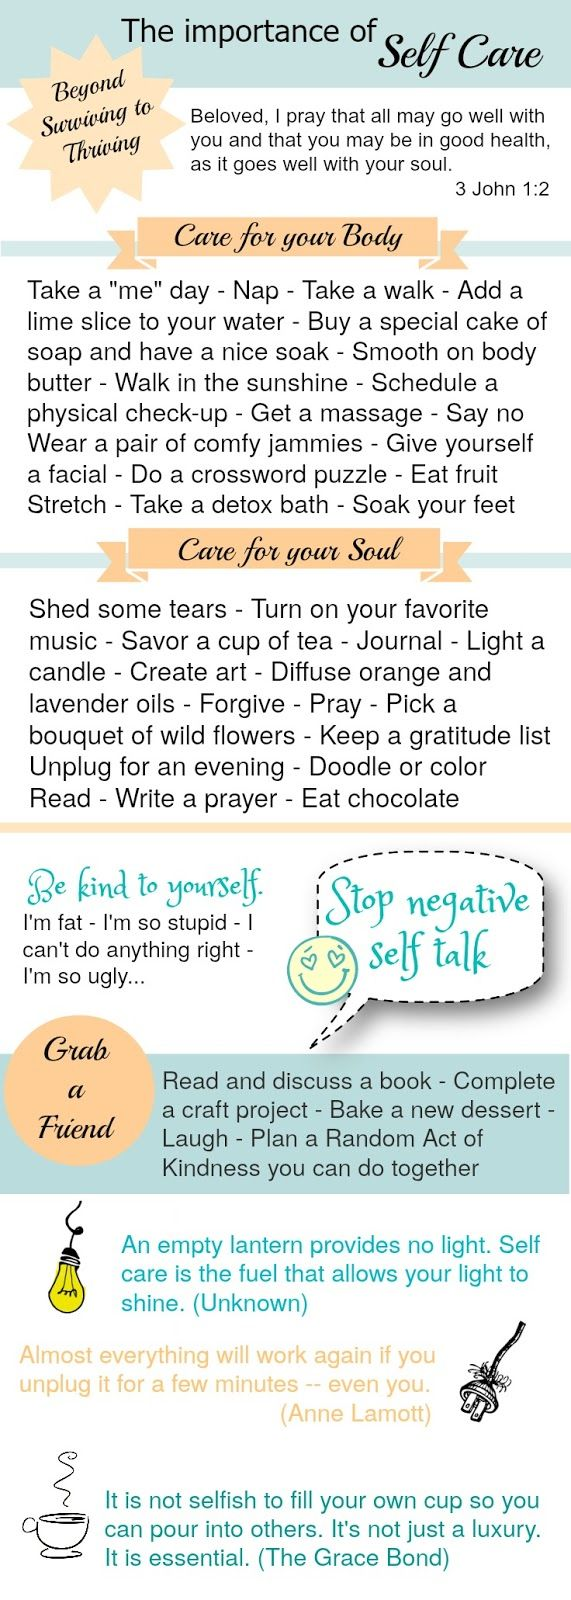 Self-care is never a selfish act – it is simply good stewardship of the only gift I have, the gift I was put on earth to offer to others. ...